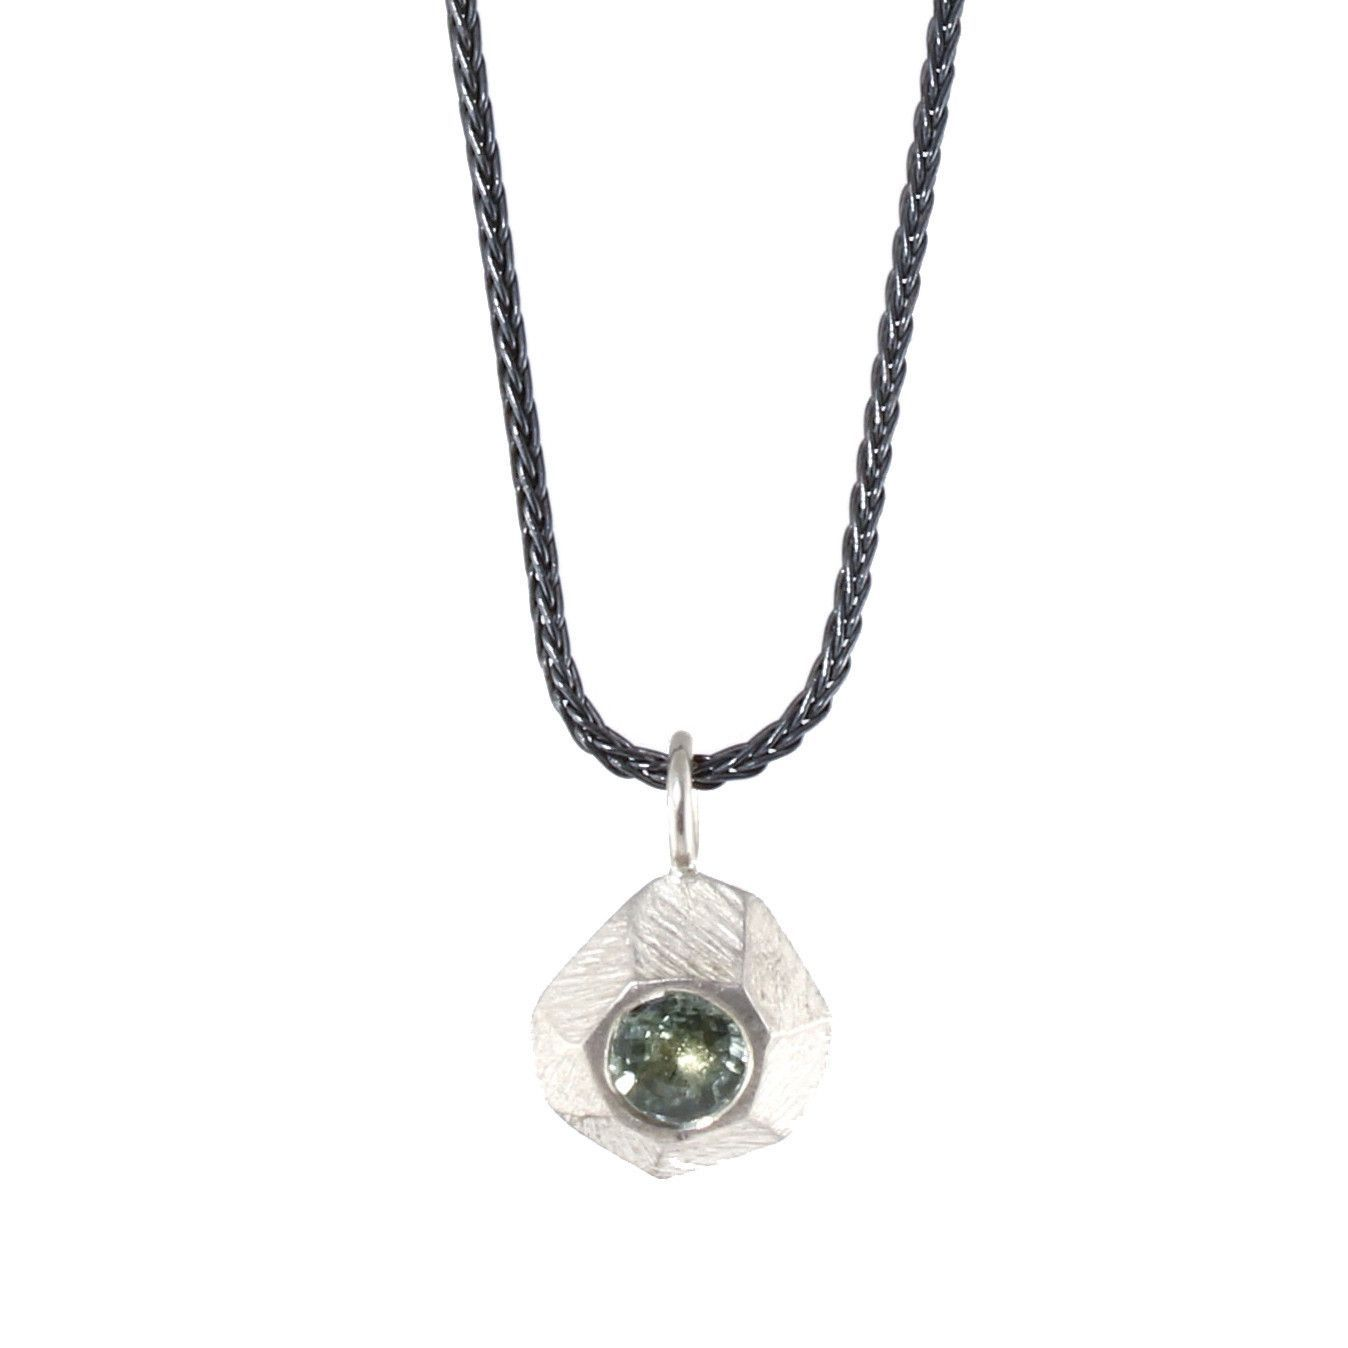 Sterling silver rock with green sapphire pendant by dahlia kanner sterling silver rock with green sapphire pendant by dahlia kanner aloadofball Image collections